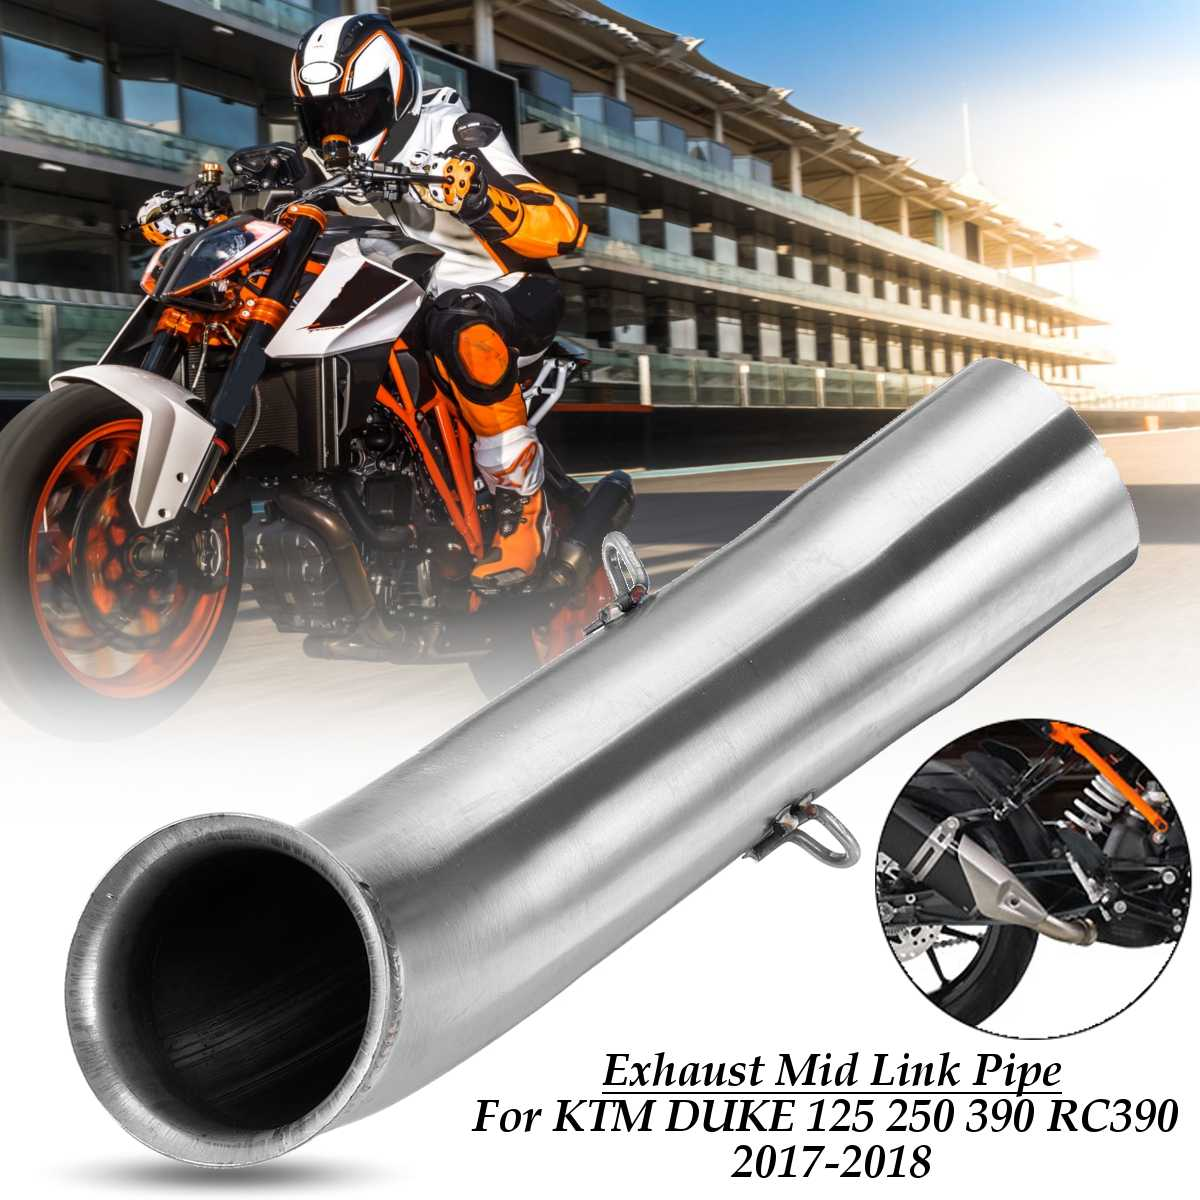 Motorcycle Moto Exhaust Muffler Middle Pipe Connect Adapter Slip-on System For KTM DUKE 390 250 125 Duke RC 390 RC390 2017 2018 image